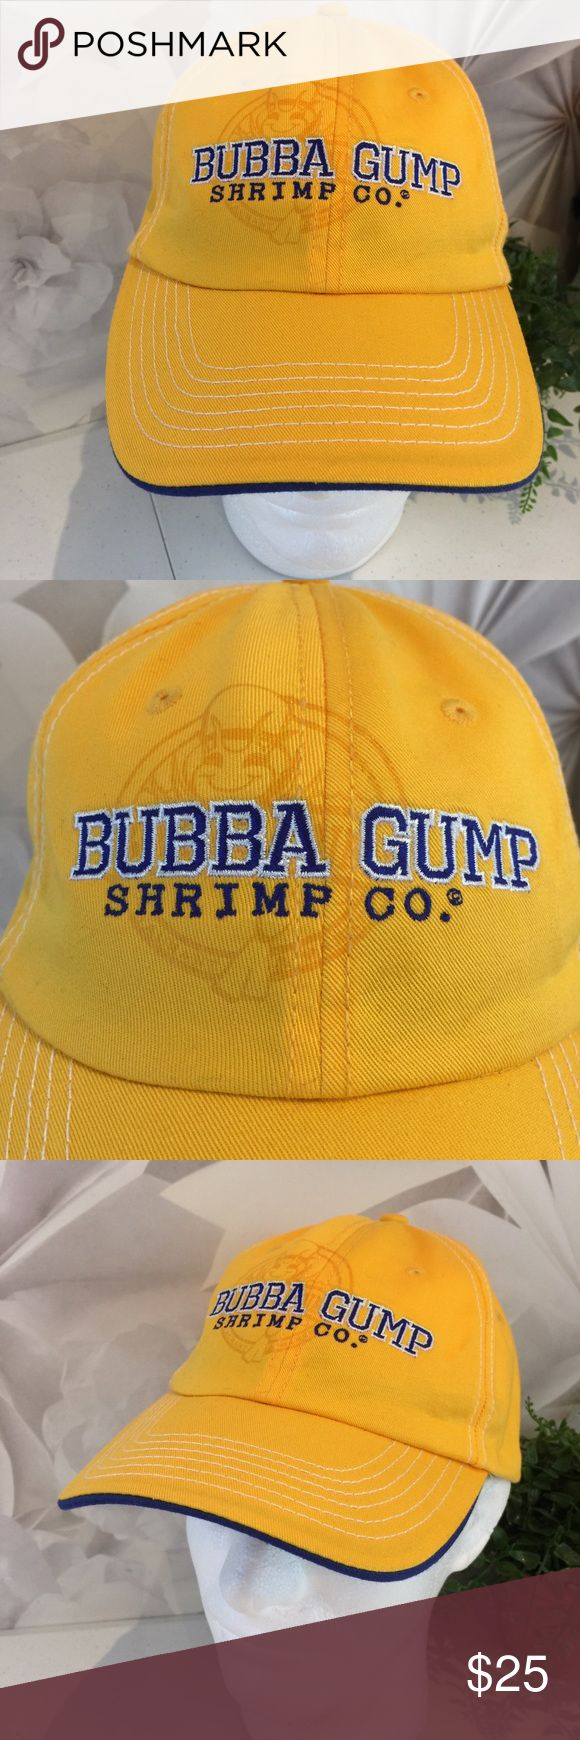 Bubba Gump Shrimp Co Hat Embroidered Las Vegas This listing is for a Bubba Gump Shrimp Company Yellow Hat Authentic Embroidered Logo OS. Las Vegas embroidered on back.  We LOVE finding unique and special hats ... of all kinds. Some are new and some have been pre-owned. We sell NFL, NBA, NHL, and AMERICAN and NATIONAL LEAGUE BASEBALL hats. NCAA hats and NASCAR hats. We find other great hats like this one ...  Comes from a smoke free and pet free environment. Hat will be shipped in a box to…